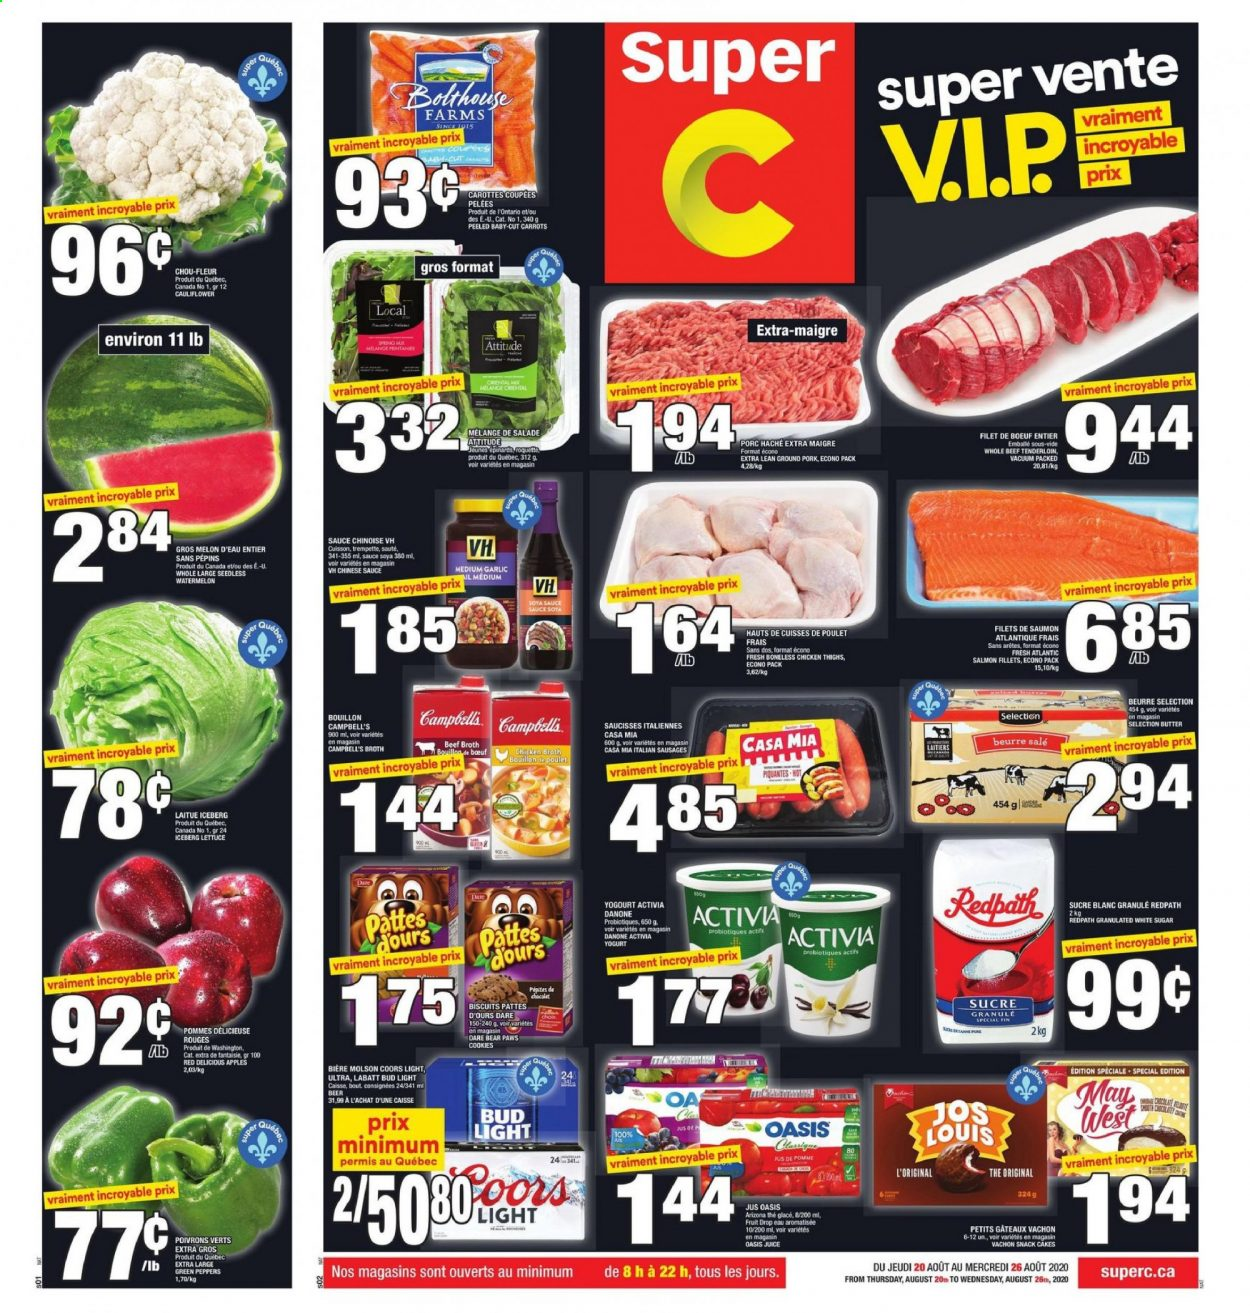 Super C Flyer - August 20, 2020 - August 26, 2020 - Sales products - apples, beef broth, beef meat, beer, biscuits, bouillon, butter, campbell's, carrots, cauliflower, cookies, garlic, ground pork, red delicious, salmon, sausages, soya sauce, sugar, vacuum, watermelon, yogurt, pork meat, chicken, chicken broth, chicken thighs, lettuce, tenderloin, juice, beef tenderloin, snack, melon, danone, bud light, sauce, poulet, pommes, saumon, porc, salade, activia, beurre, bière, biscuit, bœuf, caisse, carotte, eau, epinard, fleur, glace, chou, chou-fleur, thé, velouté, sucre, ours, sauce soya, saucisse, poivrons, roquette, jus, fruits. Page 1.